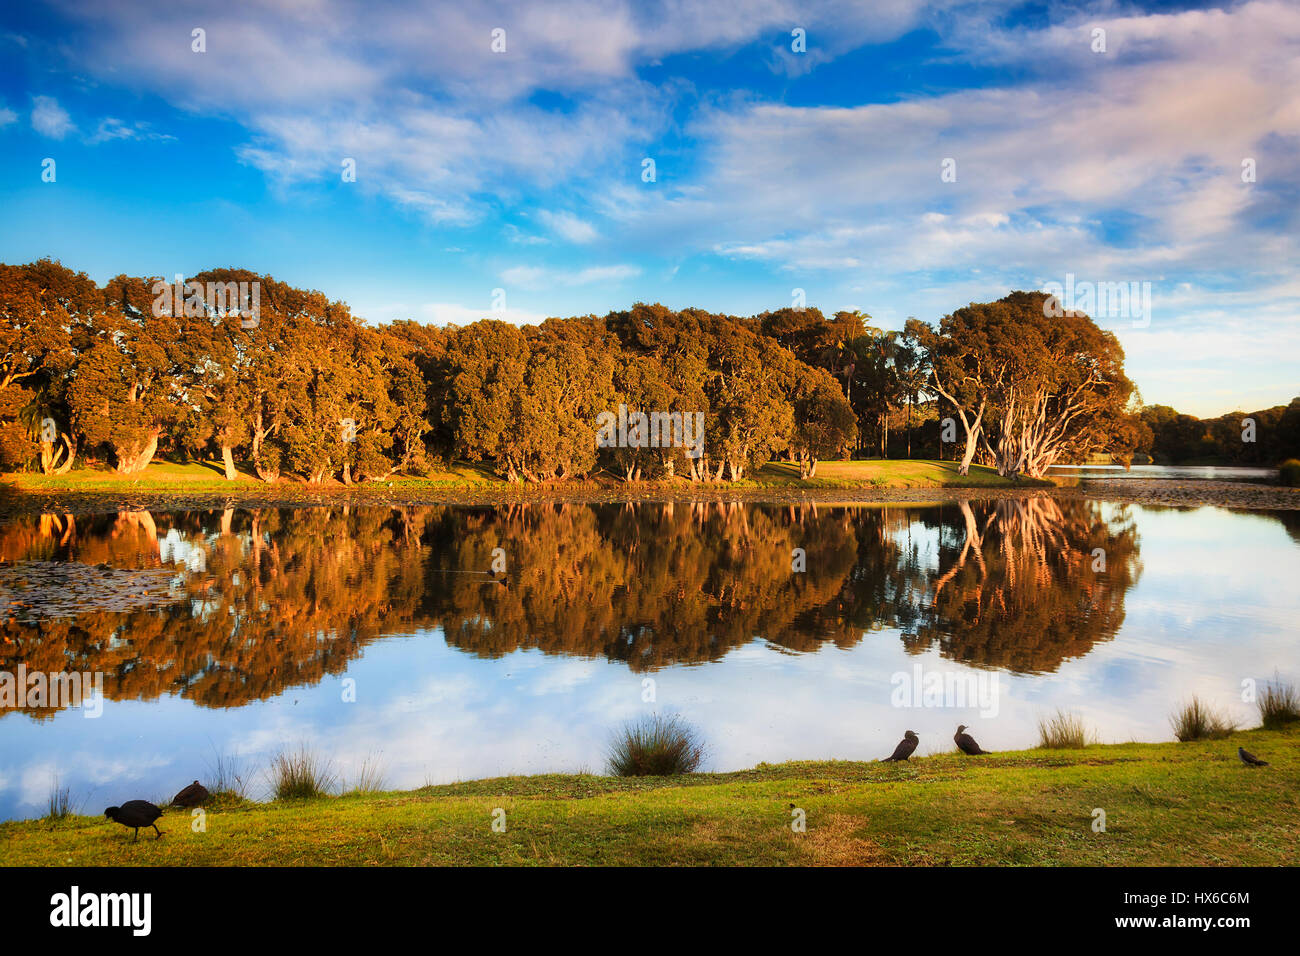 Gumtrees reflecting in still waters of pond with water lilies in Sydney centennial park at sunrise, lit by warm - Stock Image